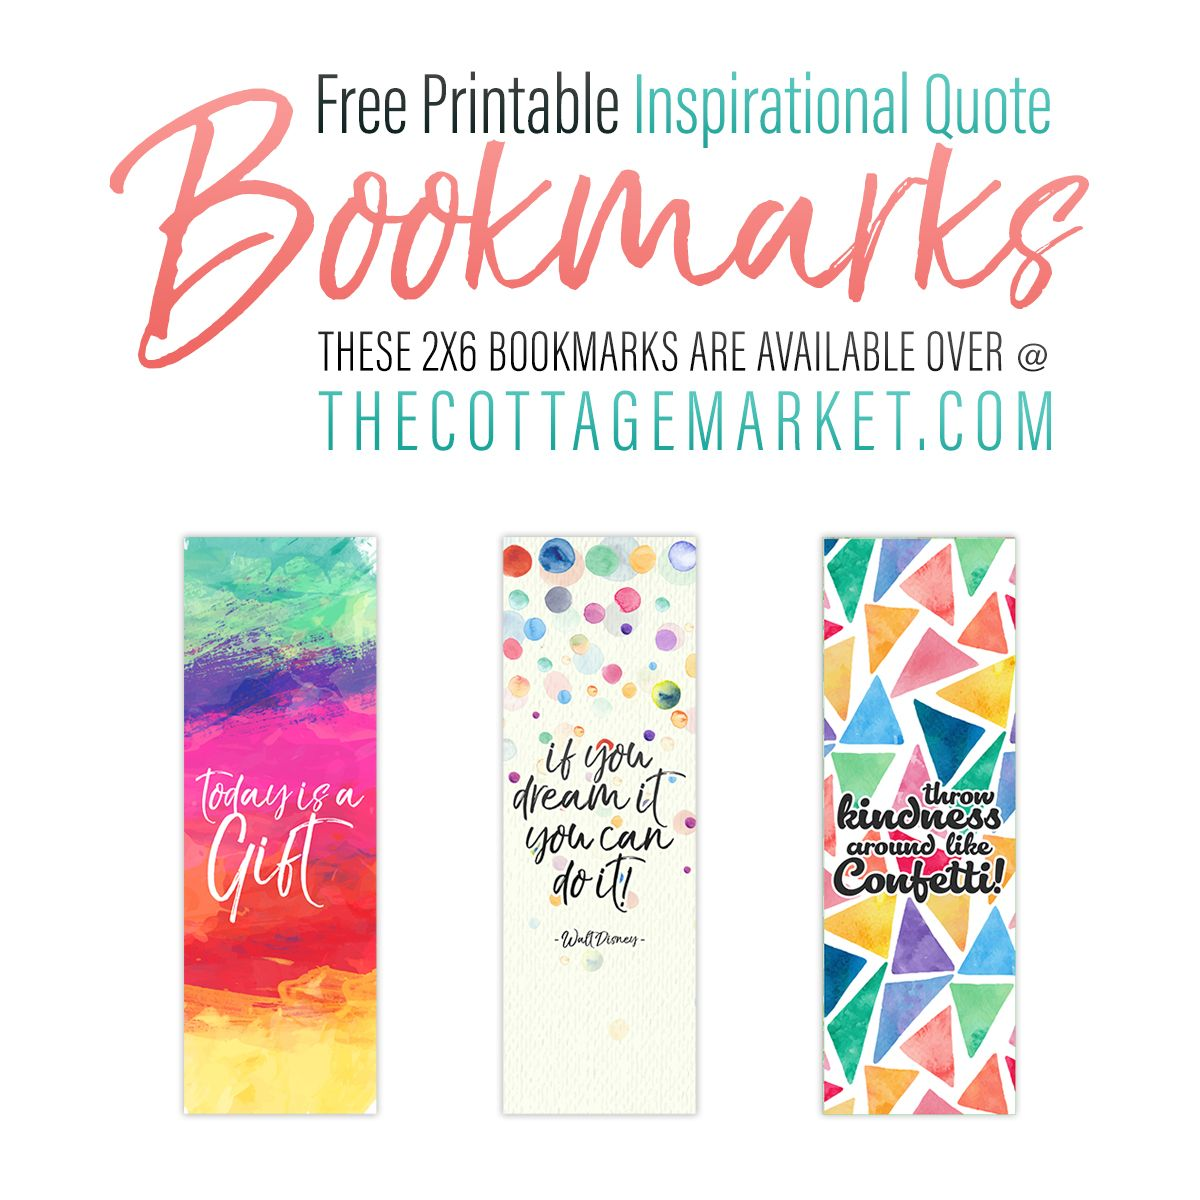 photo relating to Free Printable Bookmarks With Quotes named Cost-free Printable Inspirational Quotation Bookmarks Printables